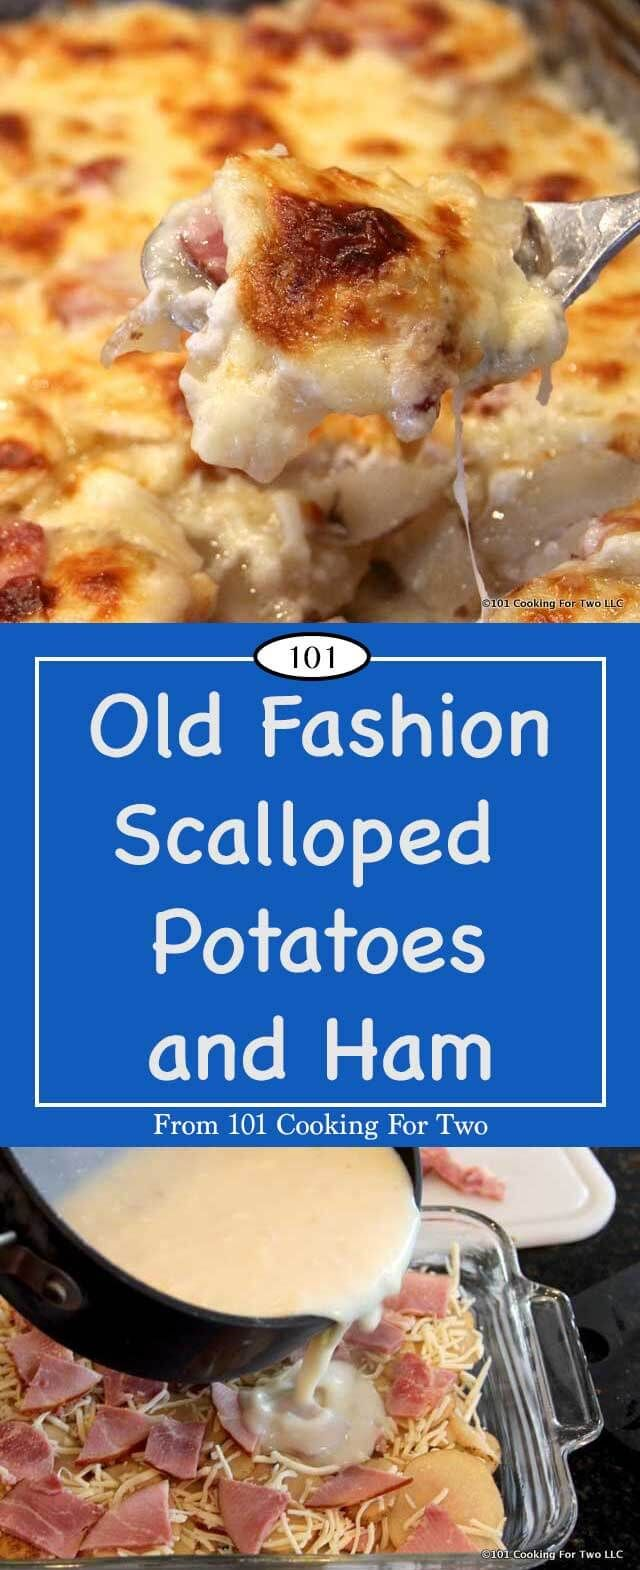 Old fashioned scalloped potatoes and ham 78